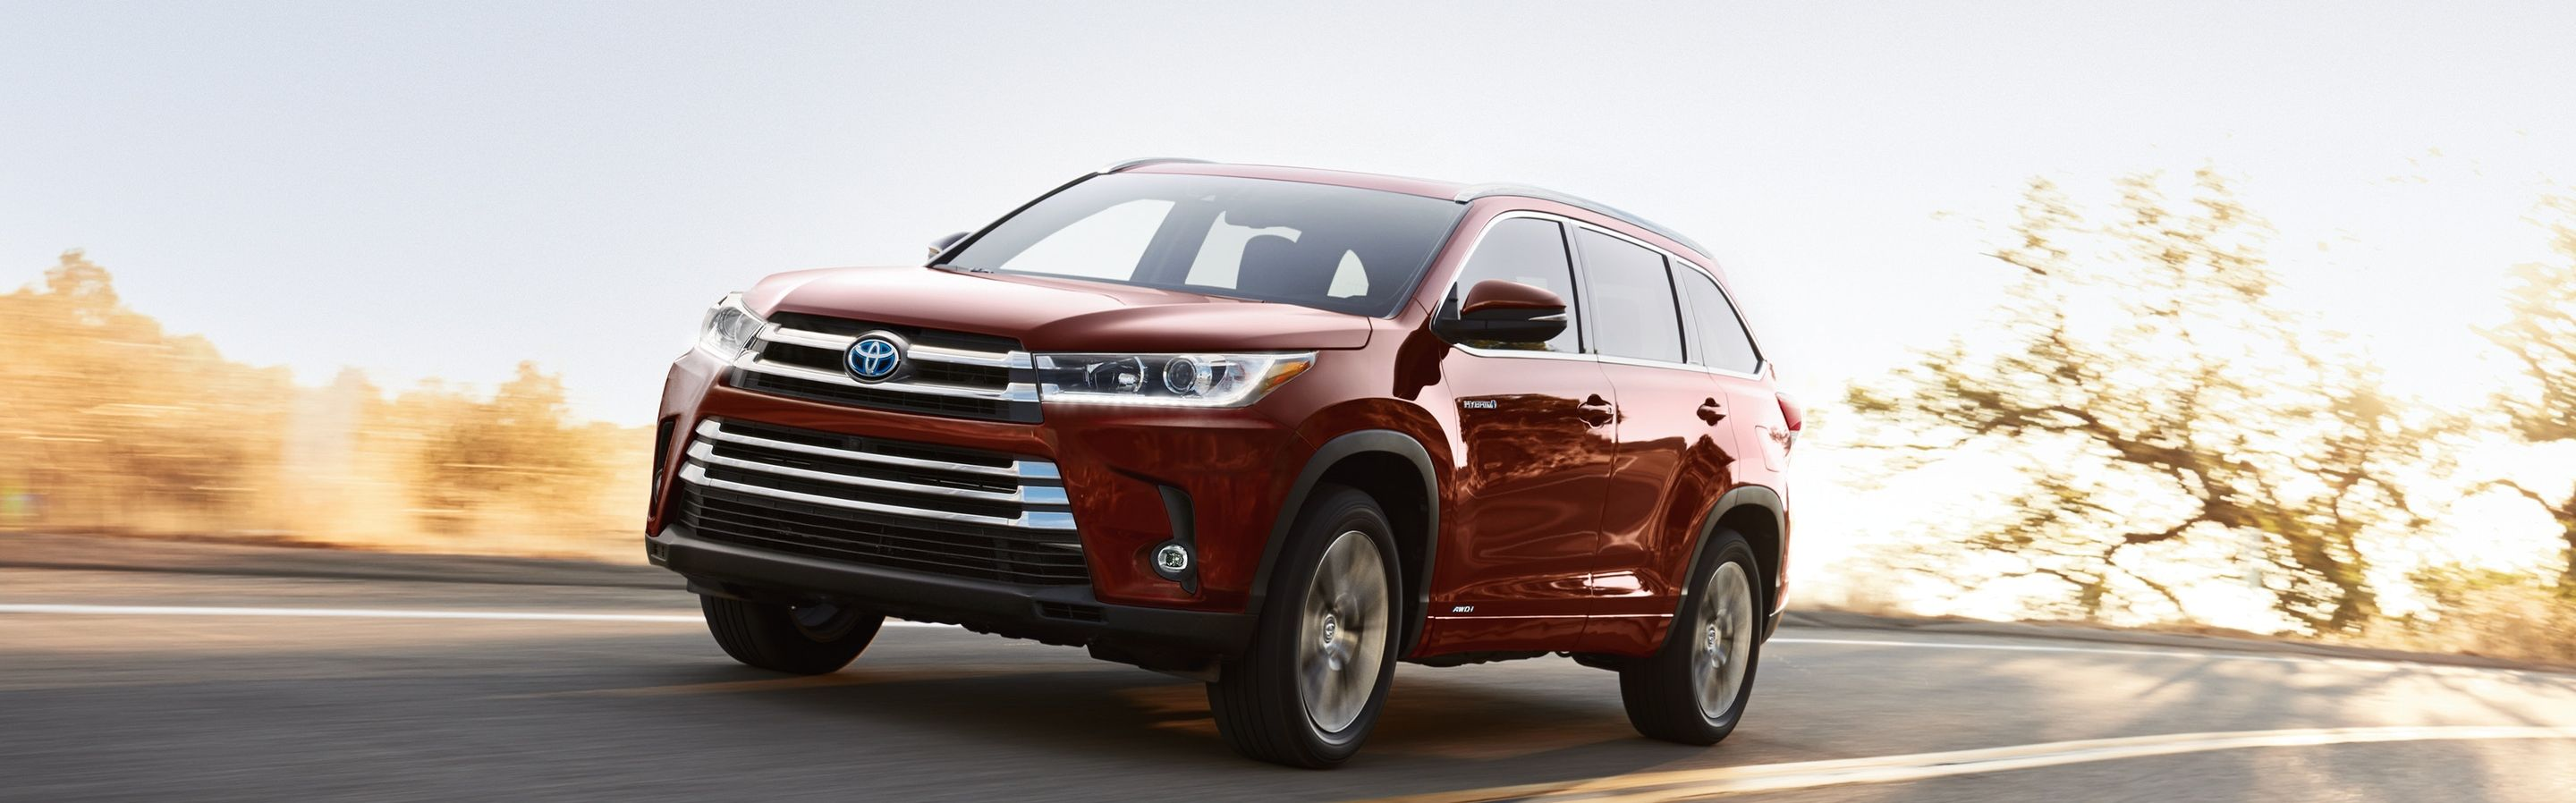 2019 Toyota Highlander for Sale near West Des Moines, IA